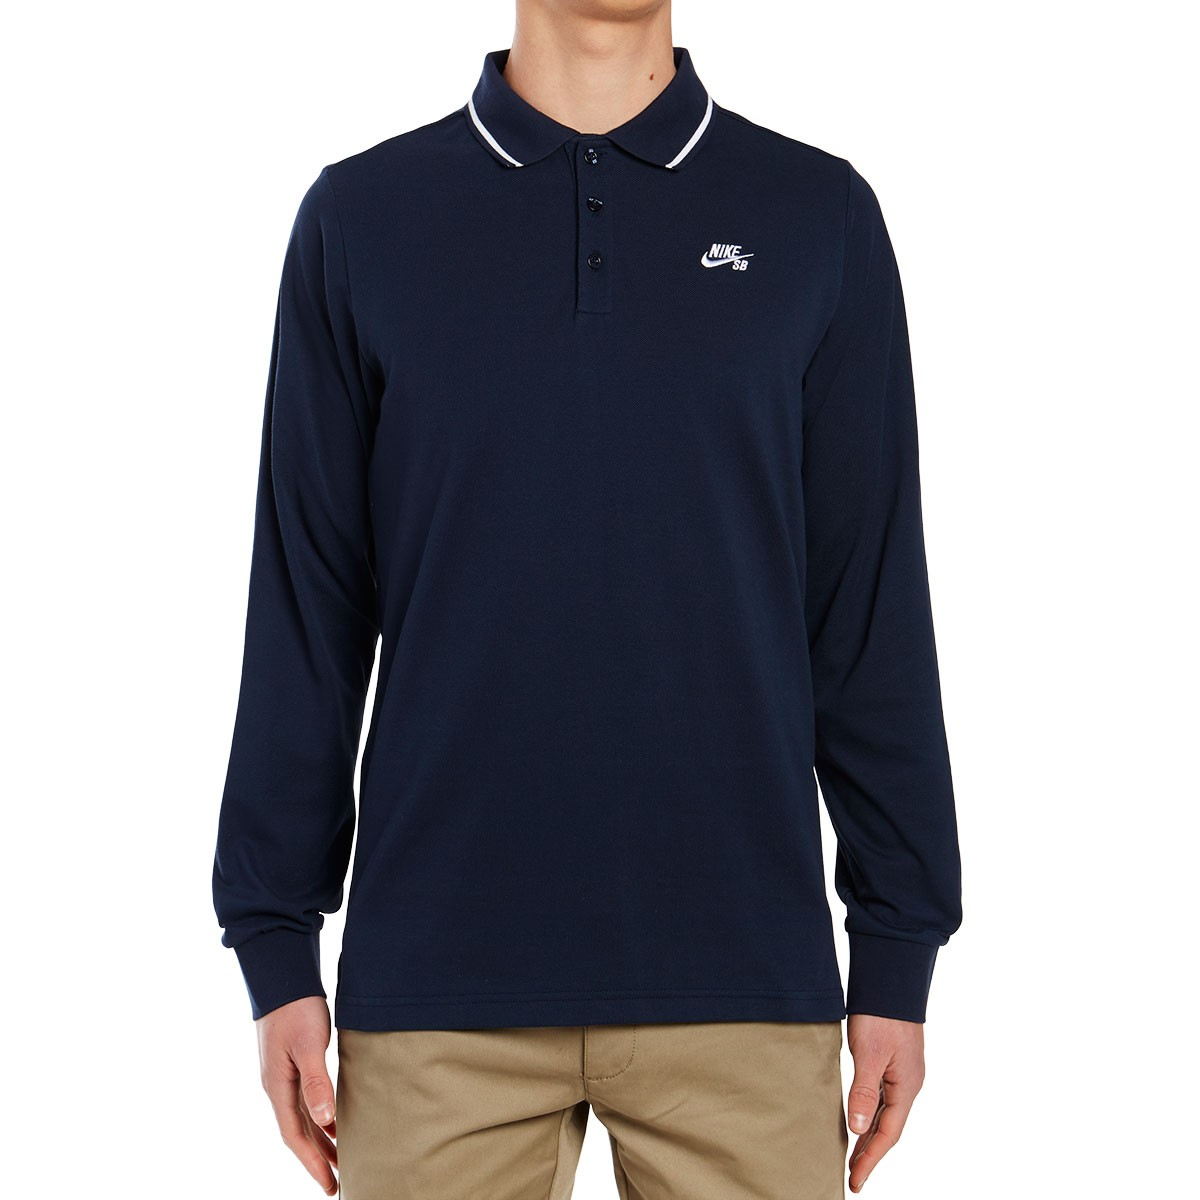 Nike SB Dry Long Sleeve Polo Shirt - Obsidian/White